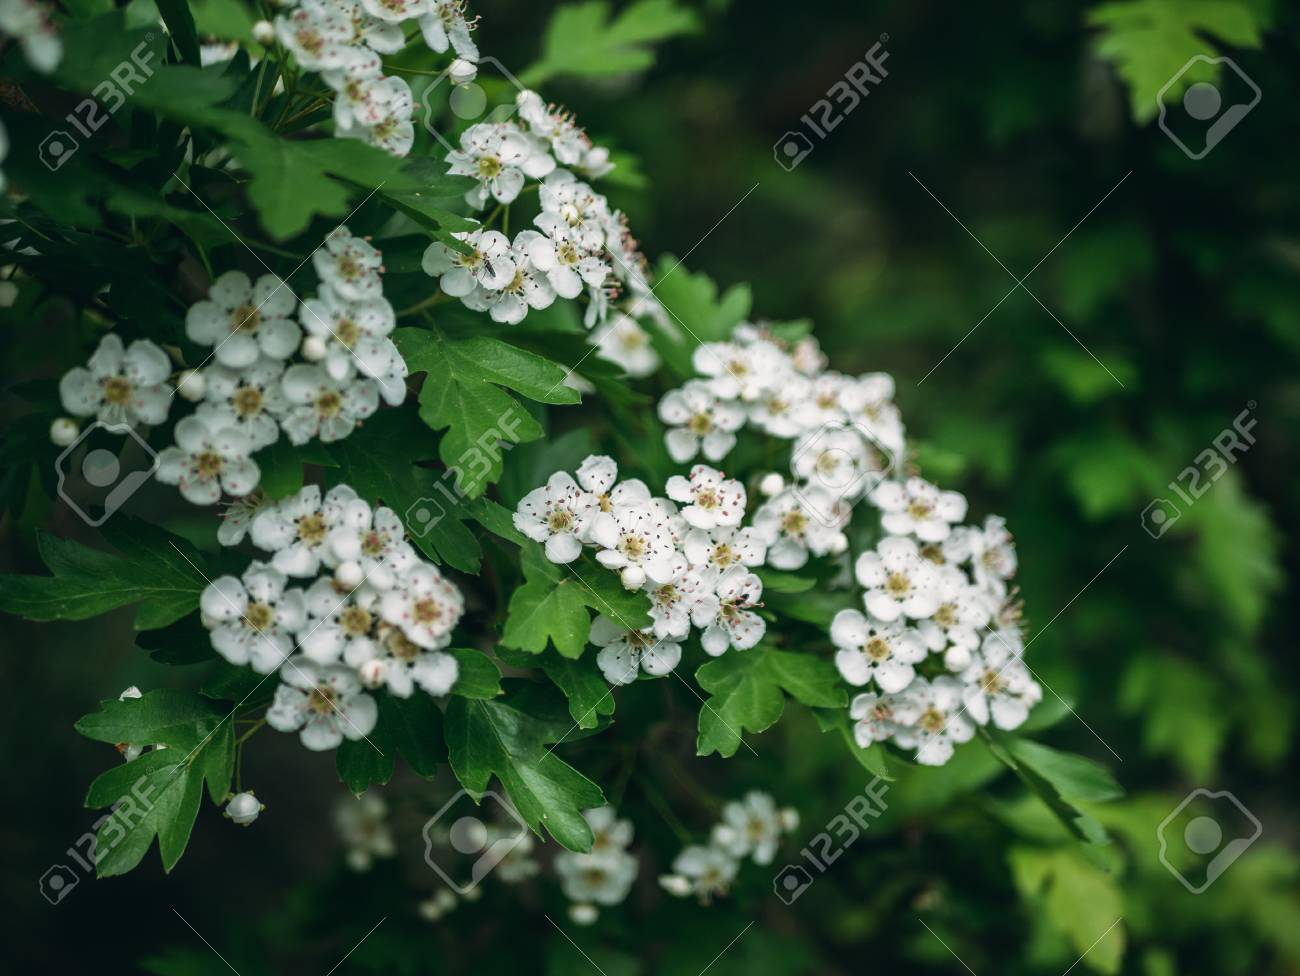 Hawthorn Tree White Flowers Blossom On Spring Green Nature